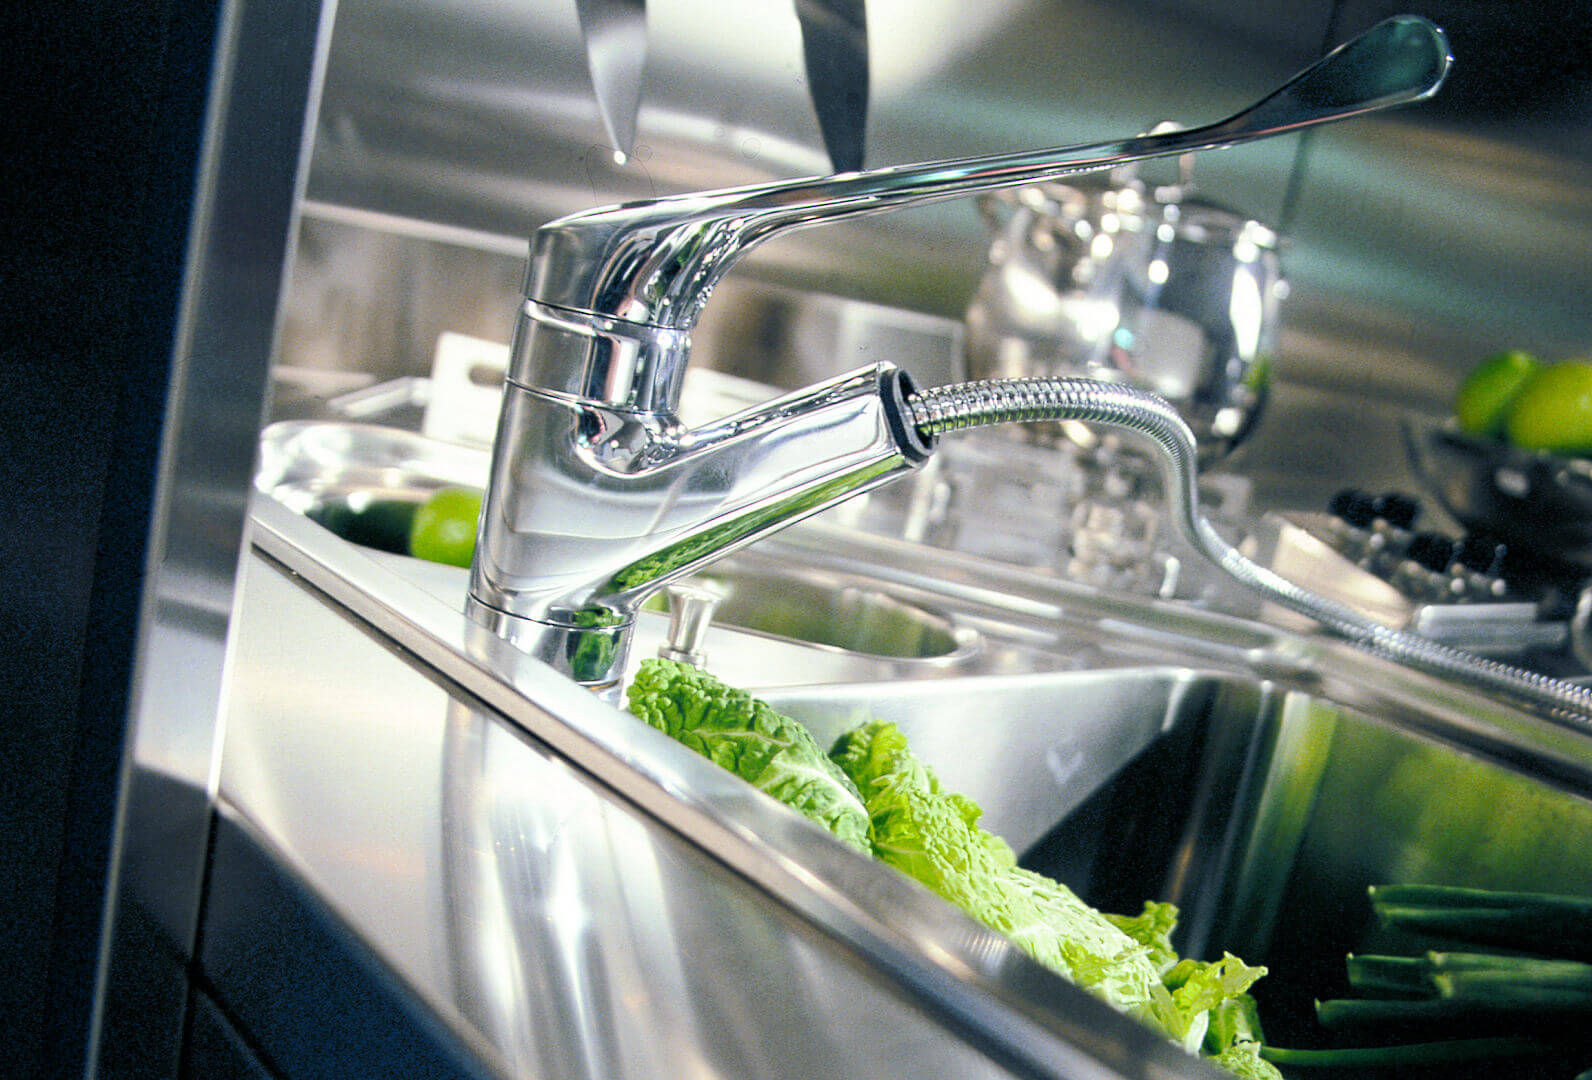 Arca Cucine Italy - Kitchen maid in Stainless Steel and Glass - Wagon - Mixer